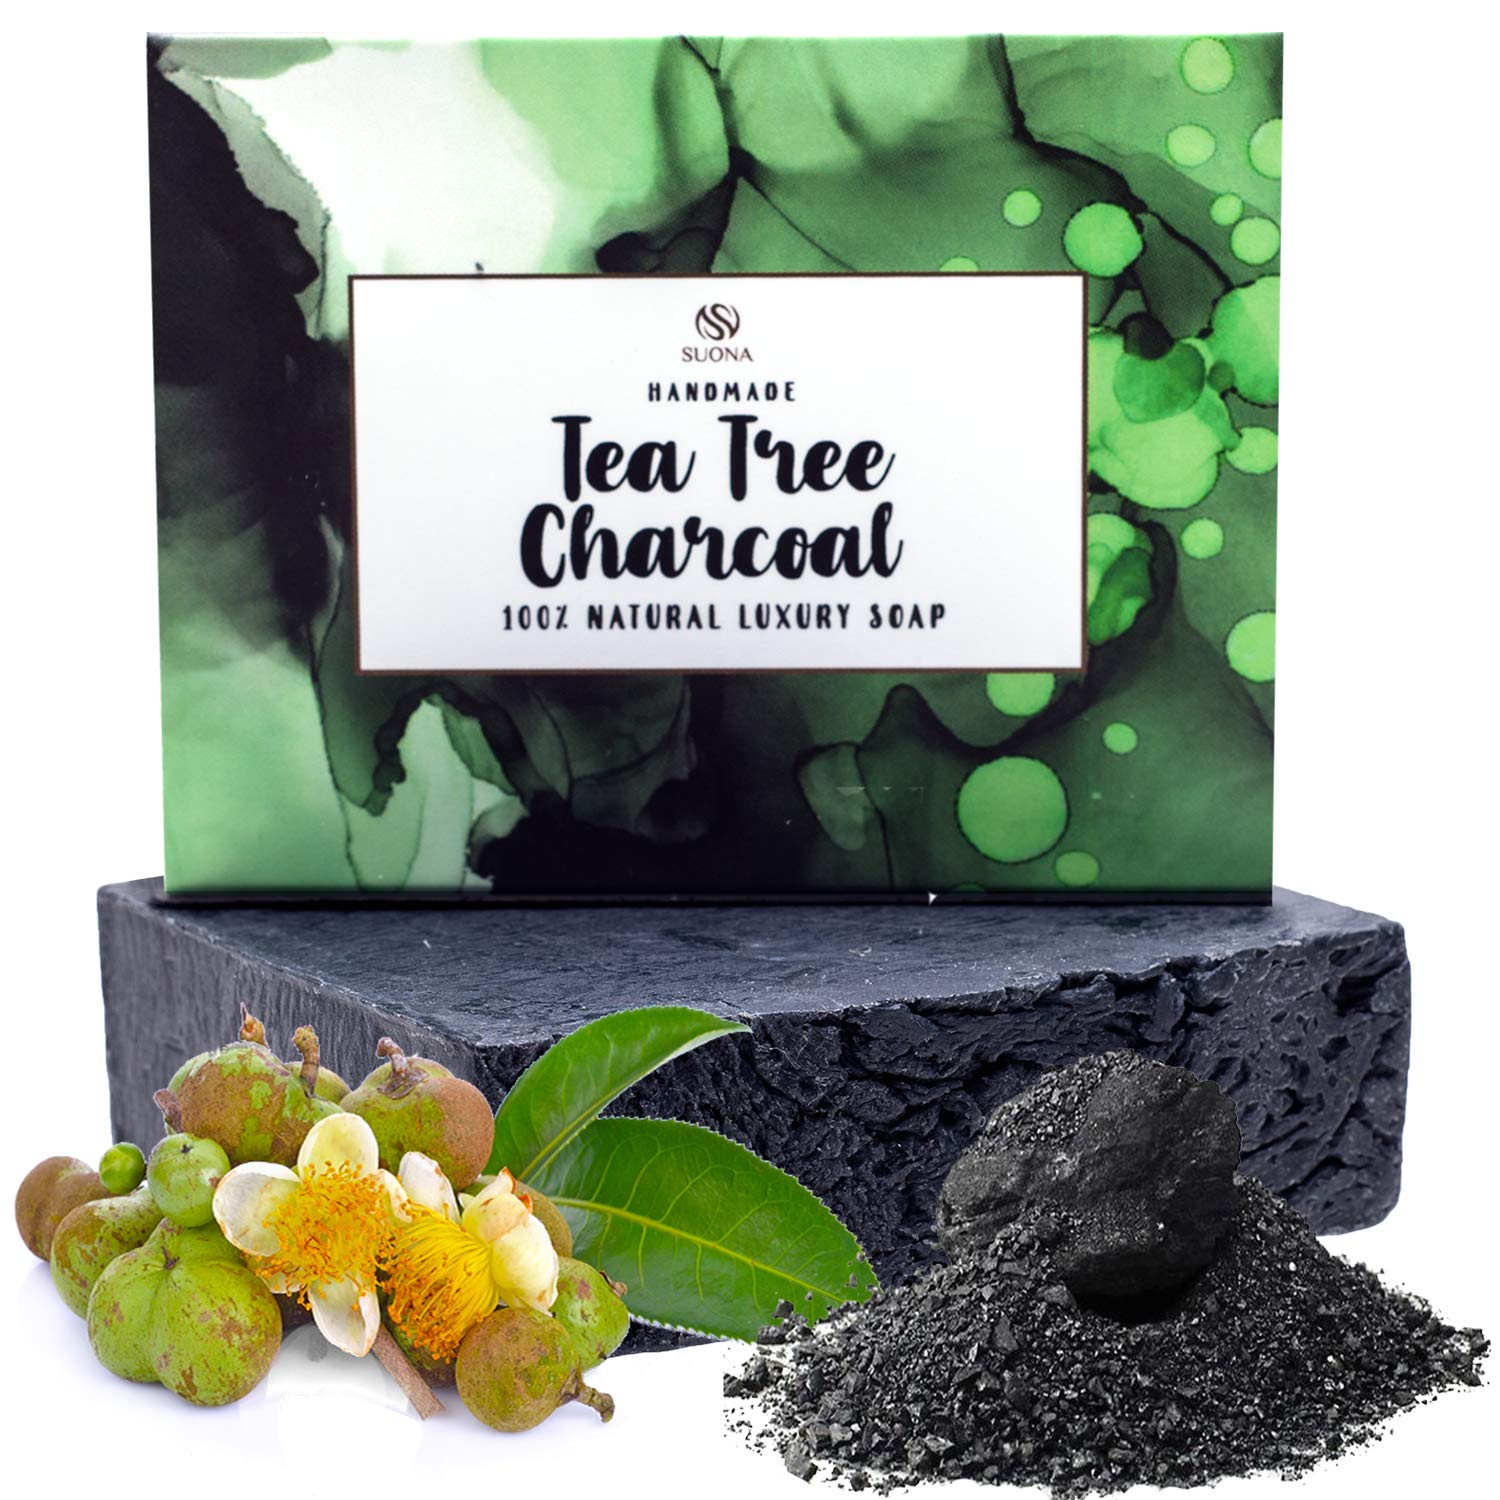 Tea Tree Organic Soap Bar - Gentle Antibacterial Face & Body Wash With Peppermint Oil & Activated Charcoal For Natural Antimicrobial Care.Aids Blemish Prone Acne Skin,Itchy Skin,Eczema. Healthy Gift Ideas